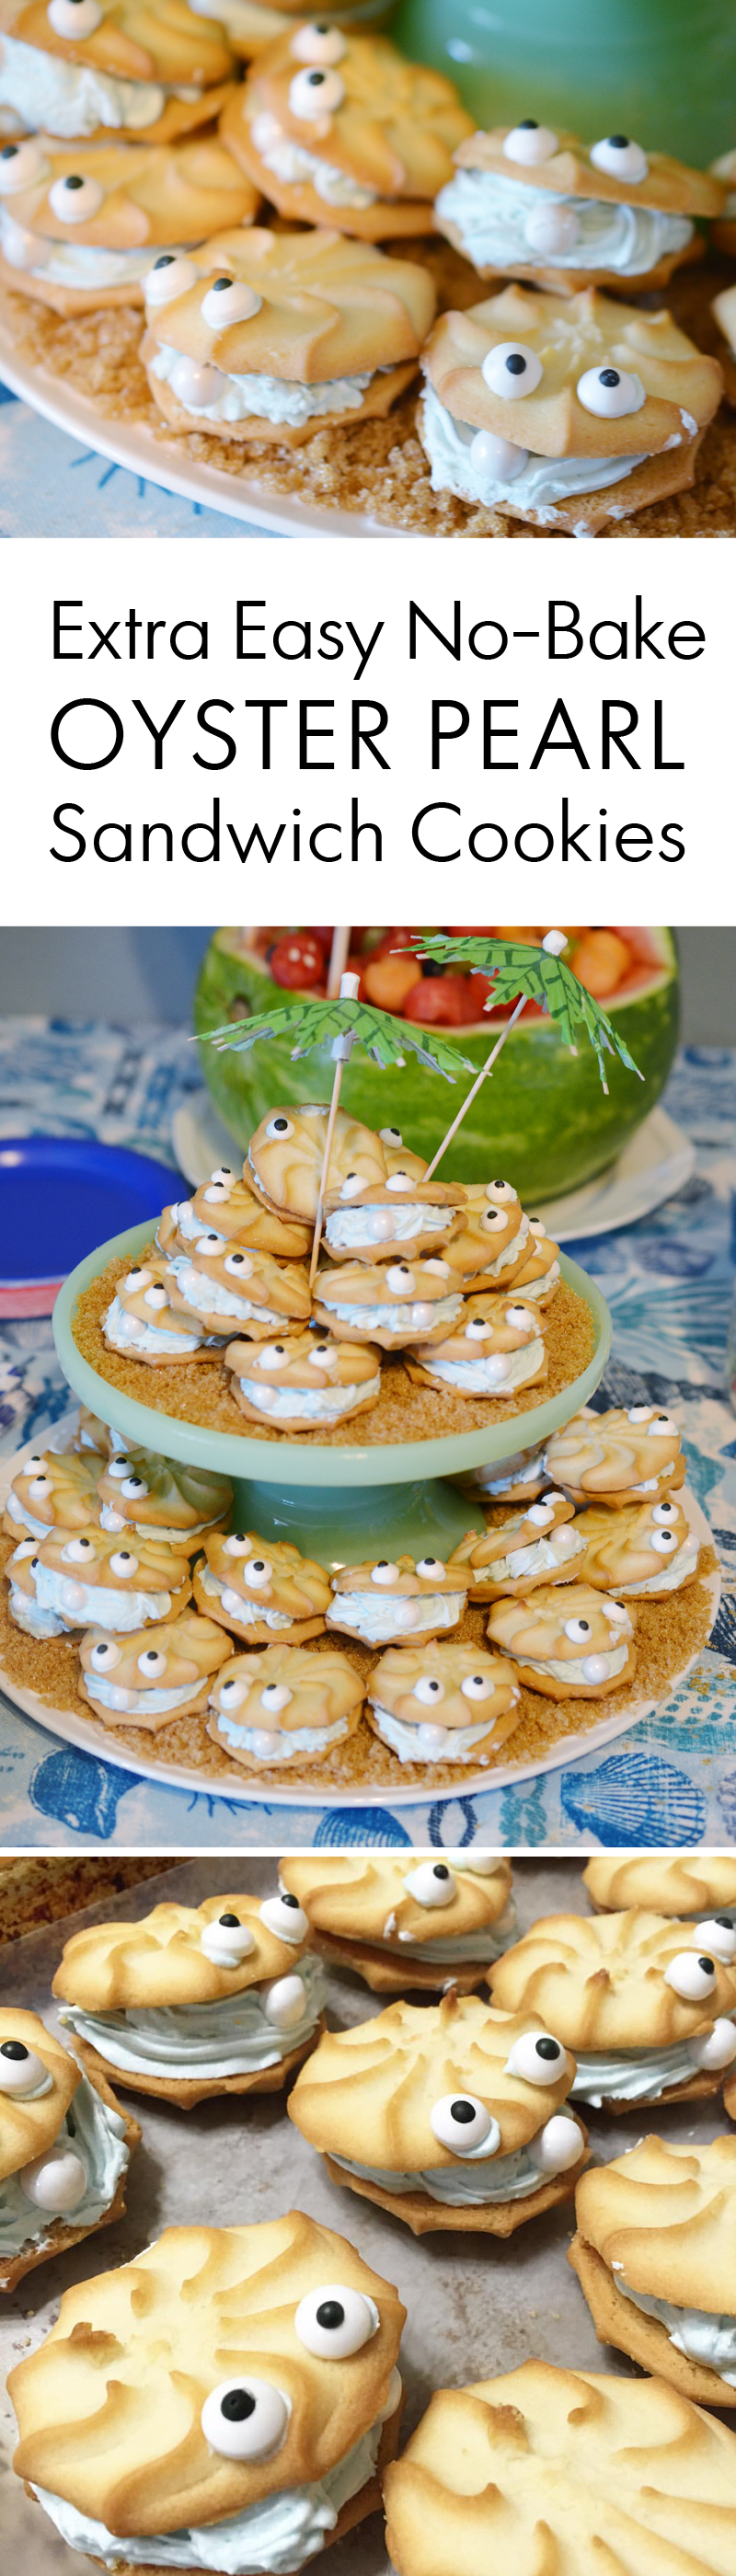 Oyster Pearl Sandwich Cookies